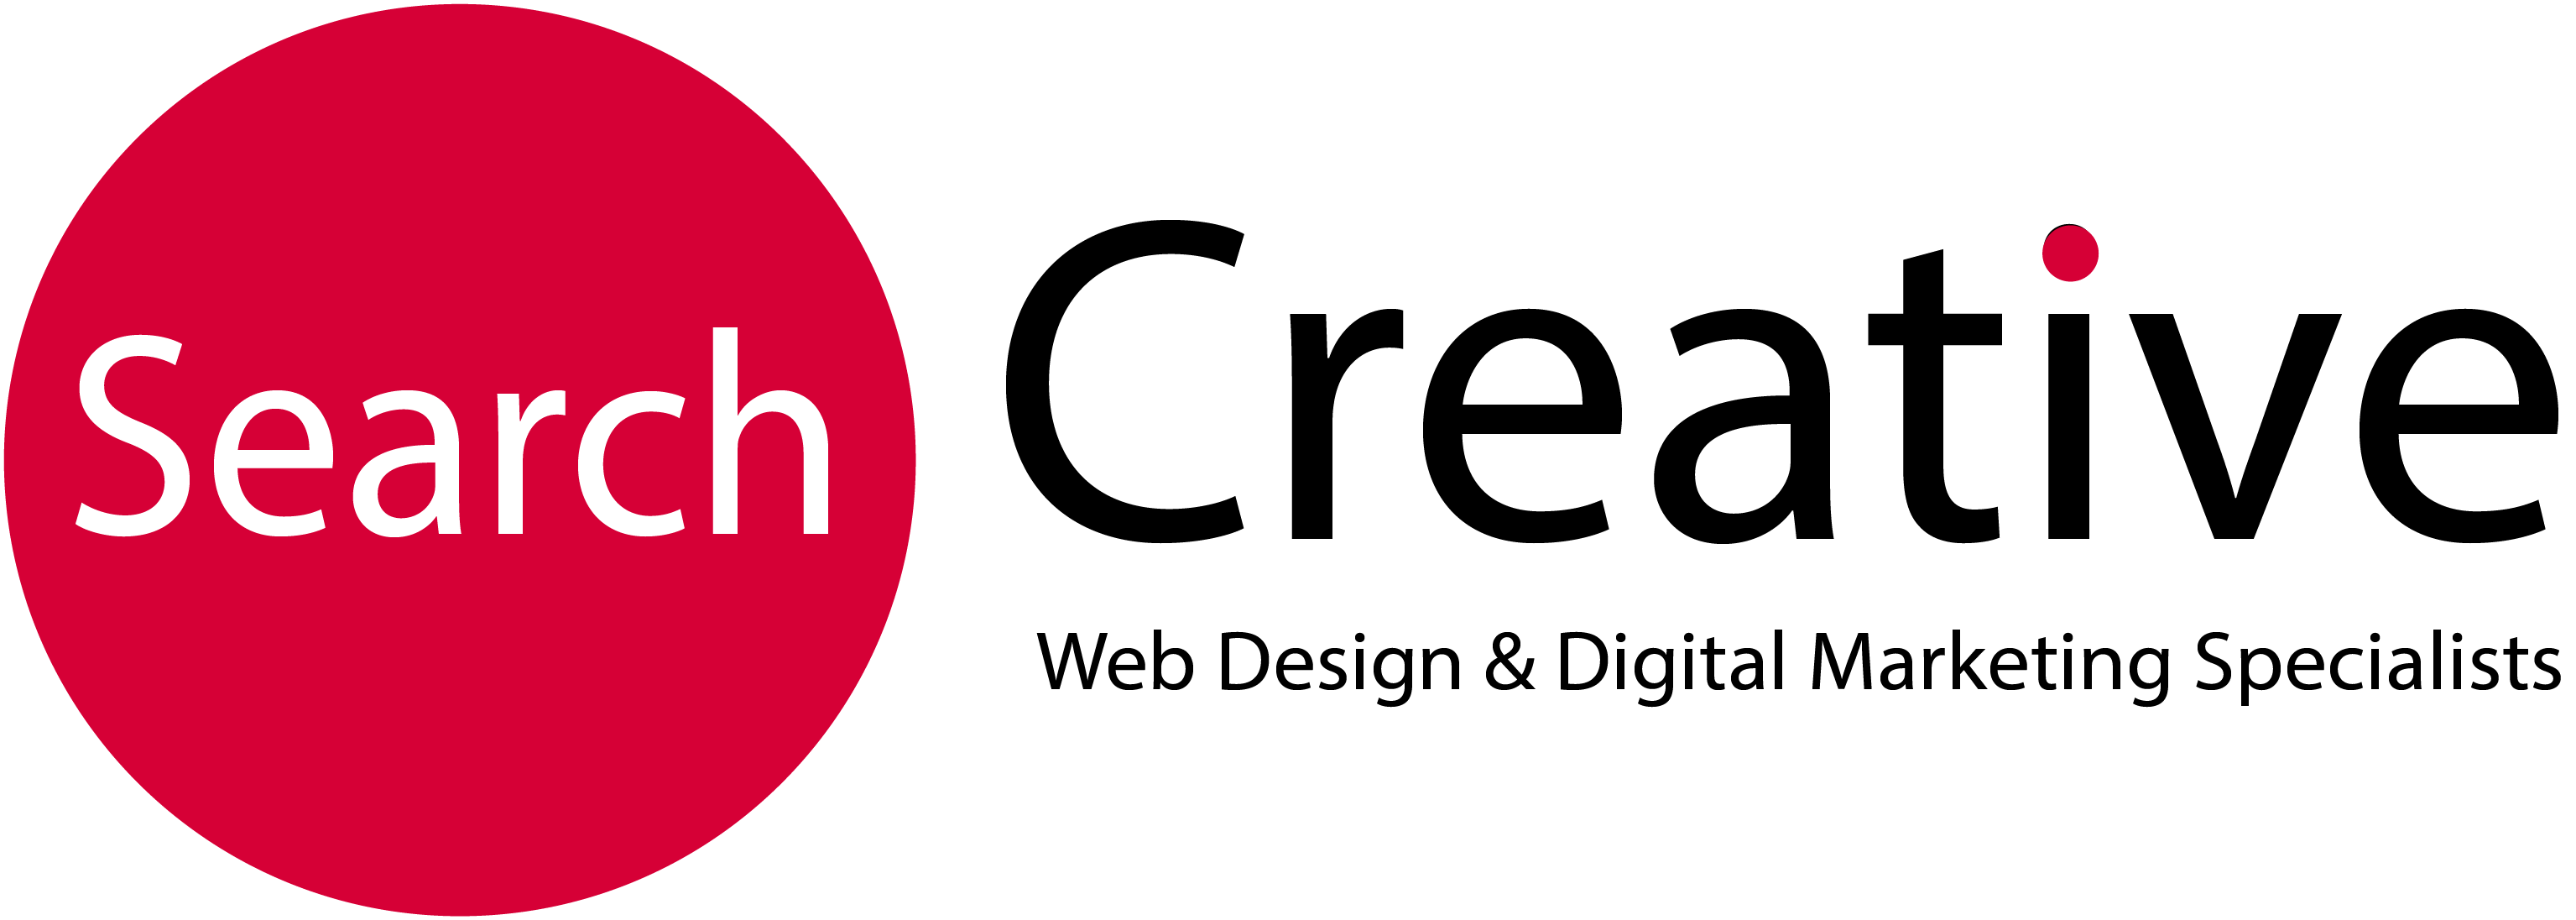 Search Creative ⭐⭐⭐⭐⭐SEO Agency London & Bournemouth